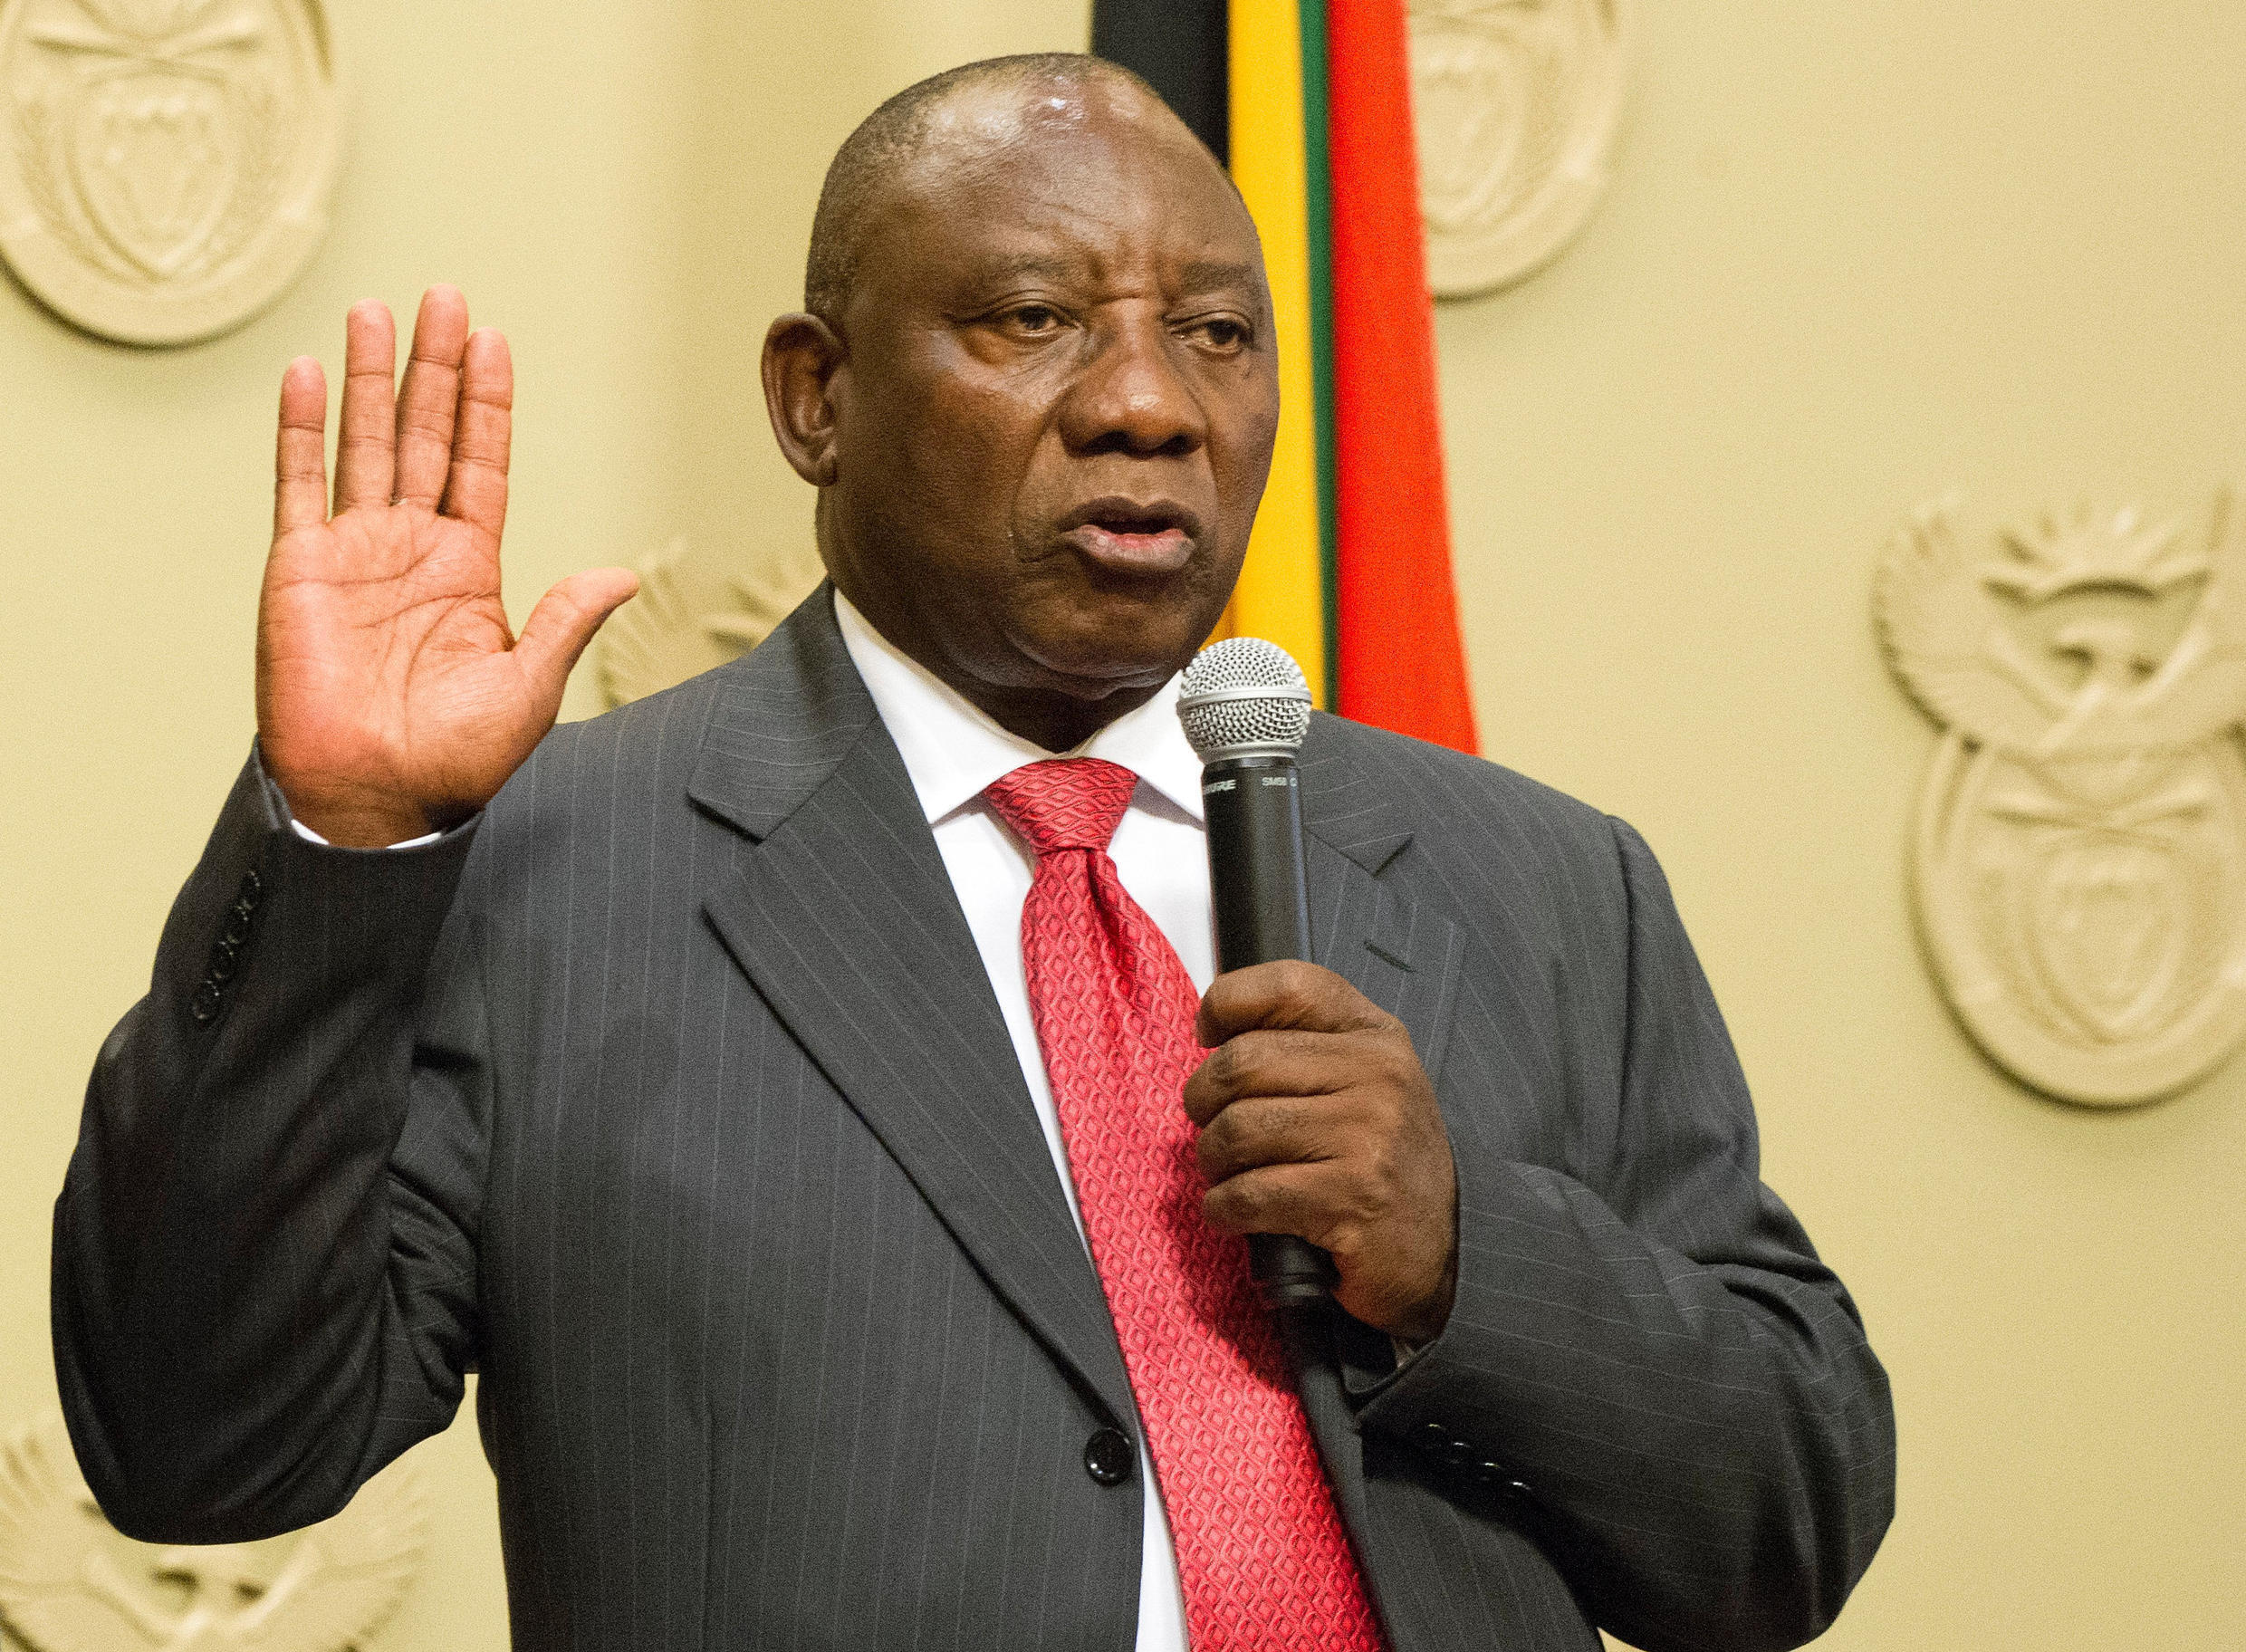 Cyril Ramaphosa is sworn in as the new South Africa president at the parliament in Cape Town on 15 February, 2018.